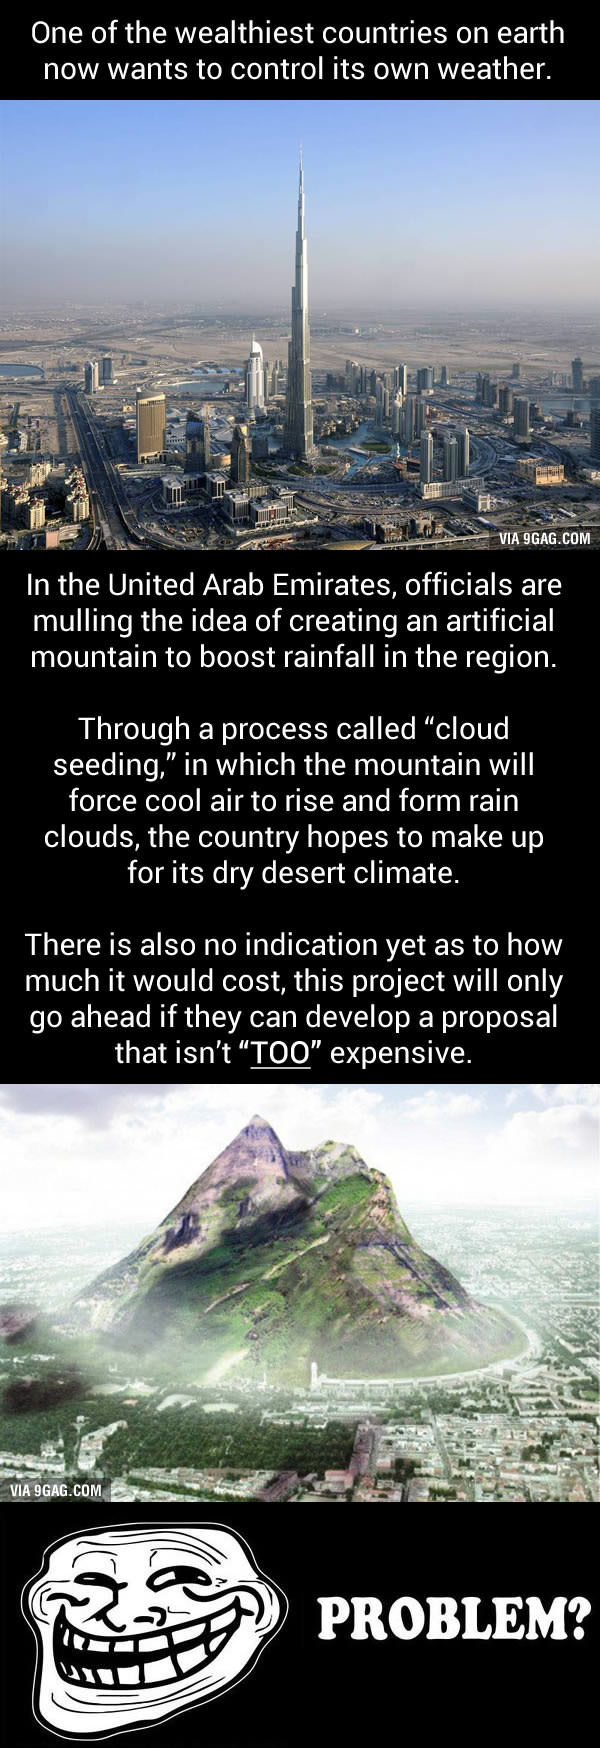 dubai to build mountain